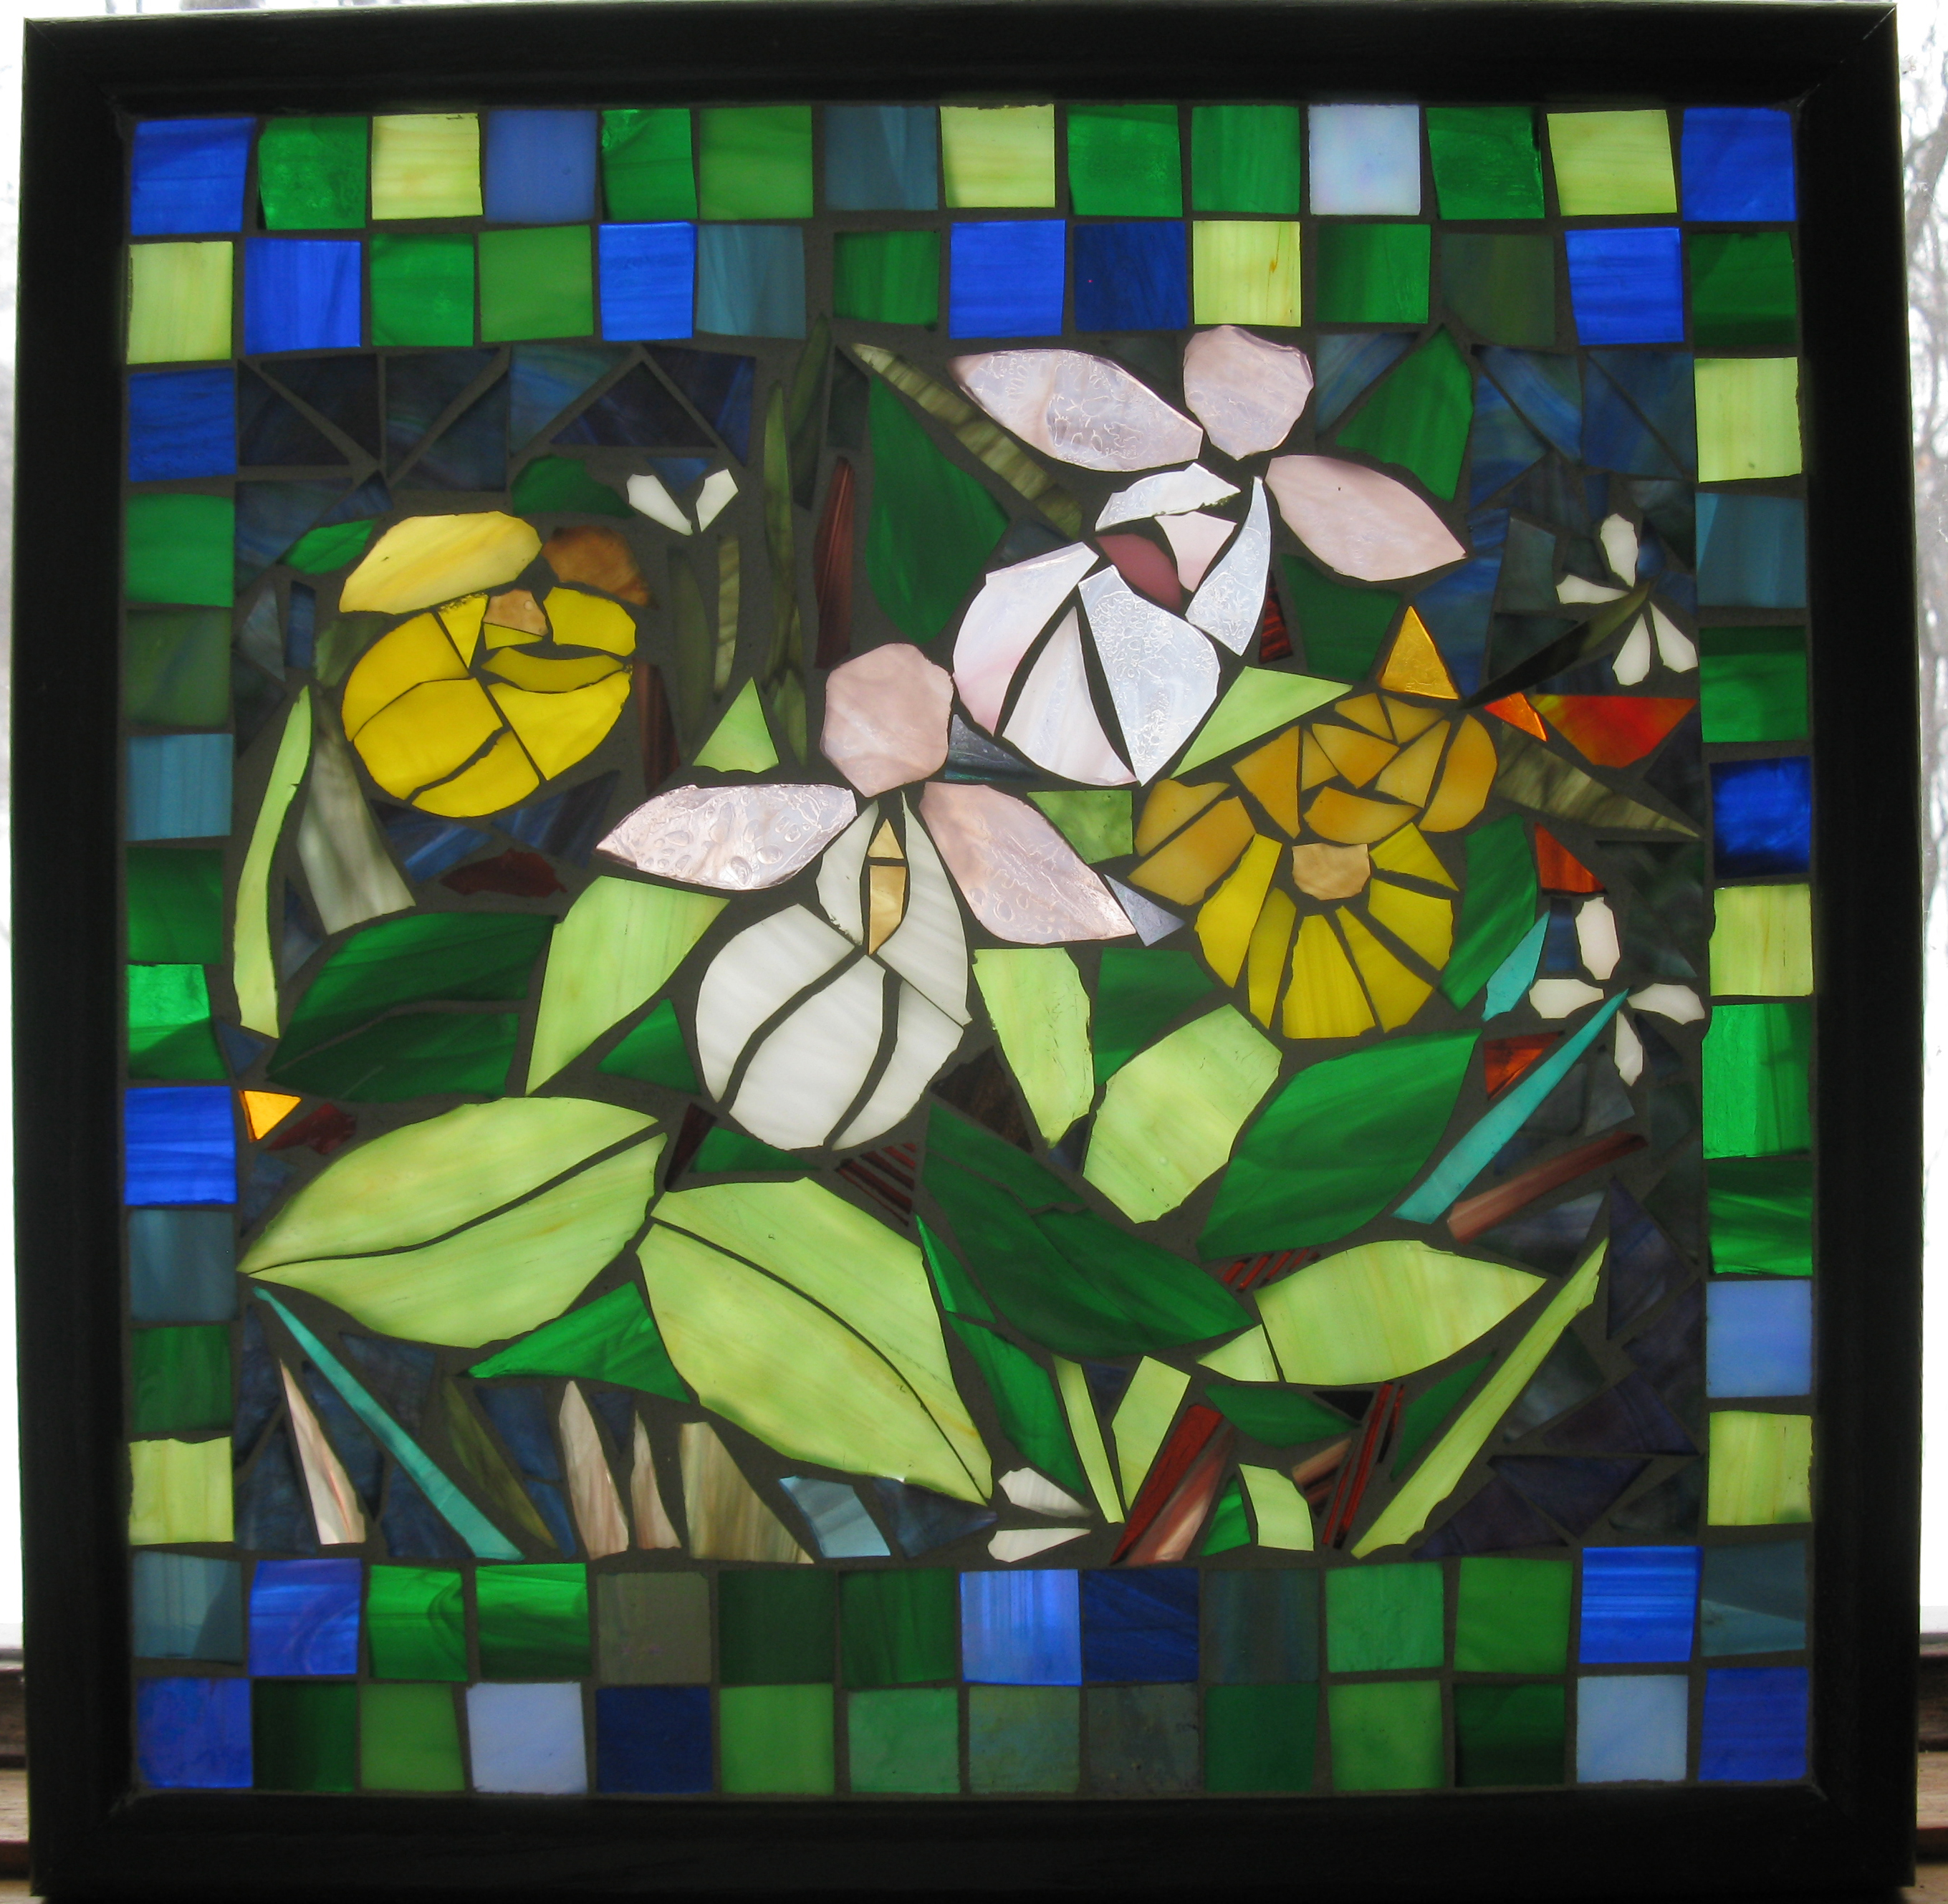 Judy Sorum, Glowing Stained Glass